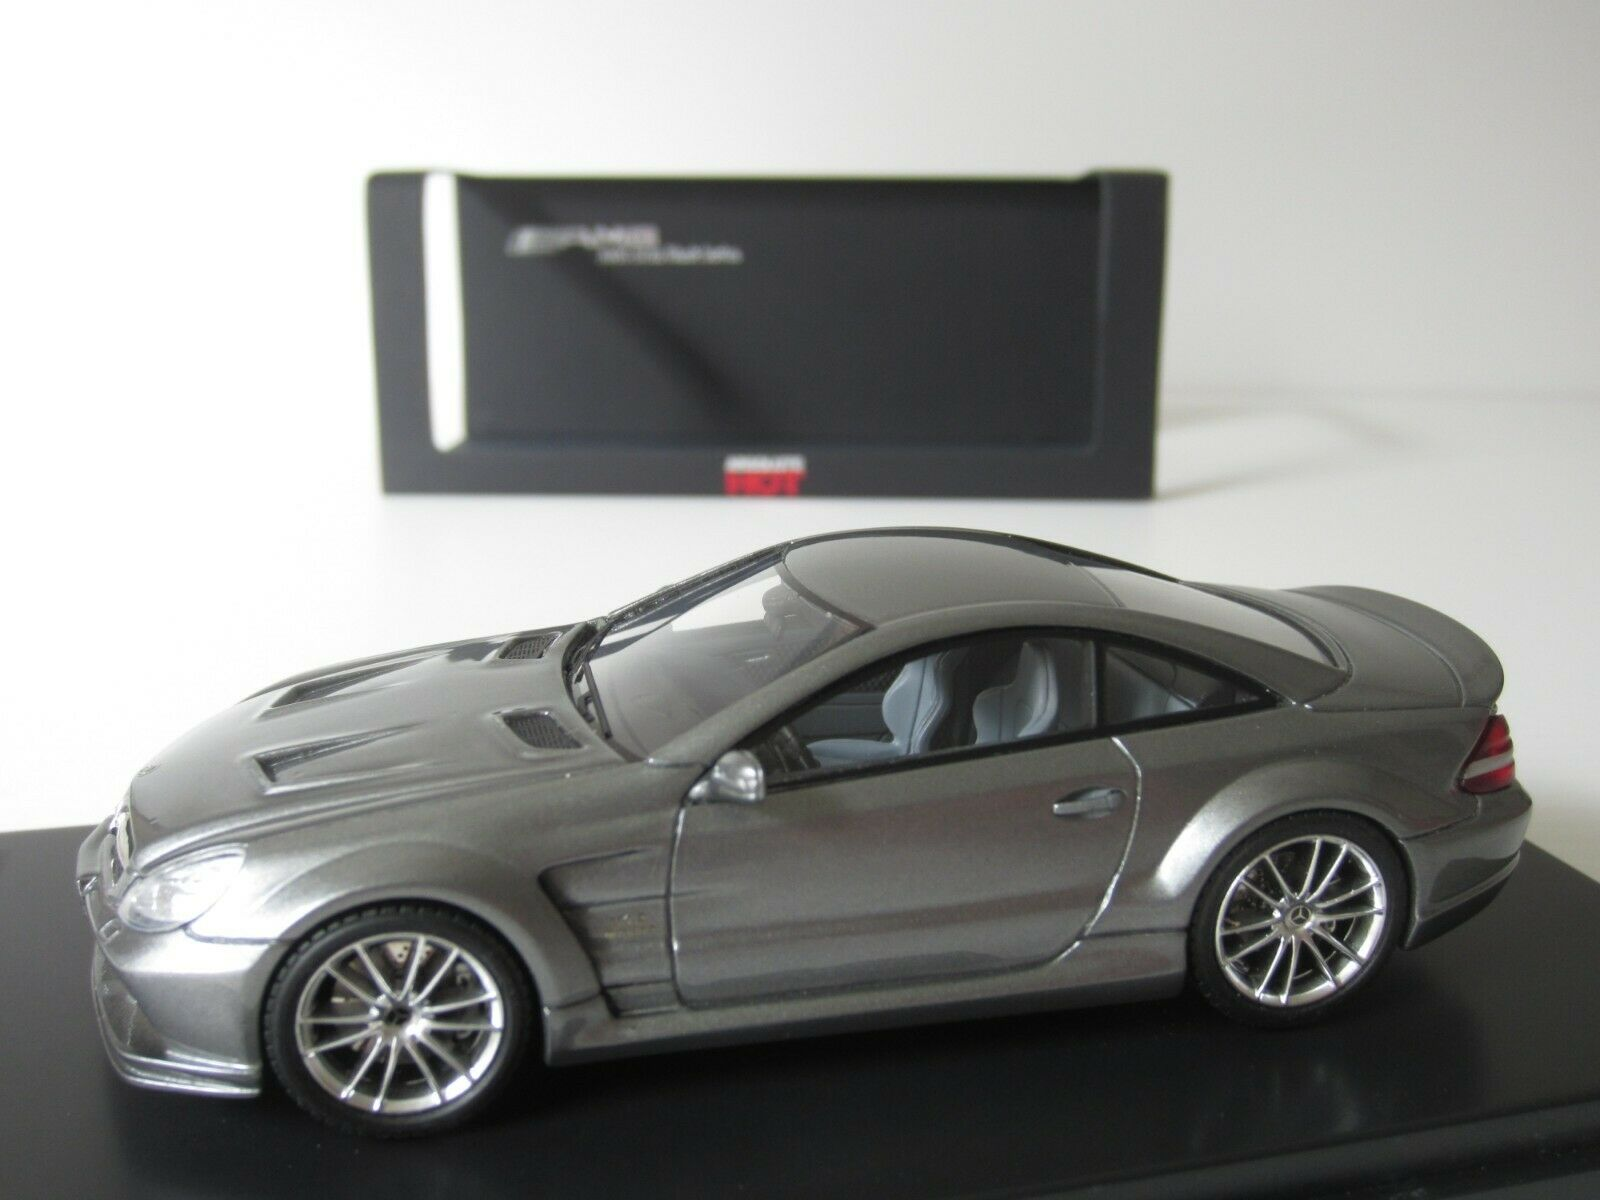 ABSOLUTE HOT, HOT, HOT, MERCEDES-BENZ SL65 AMG in CARBON GREY, 1 43 Scale NEW RESIN MODEL 0e736c